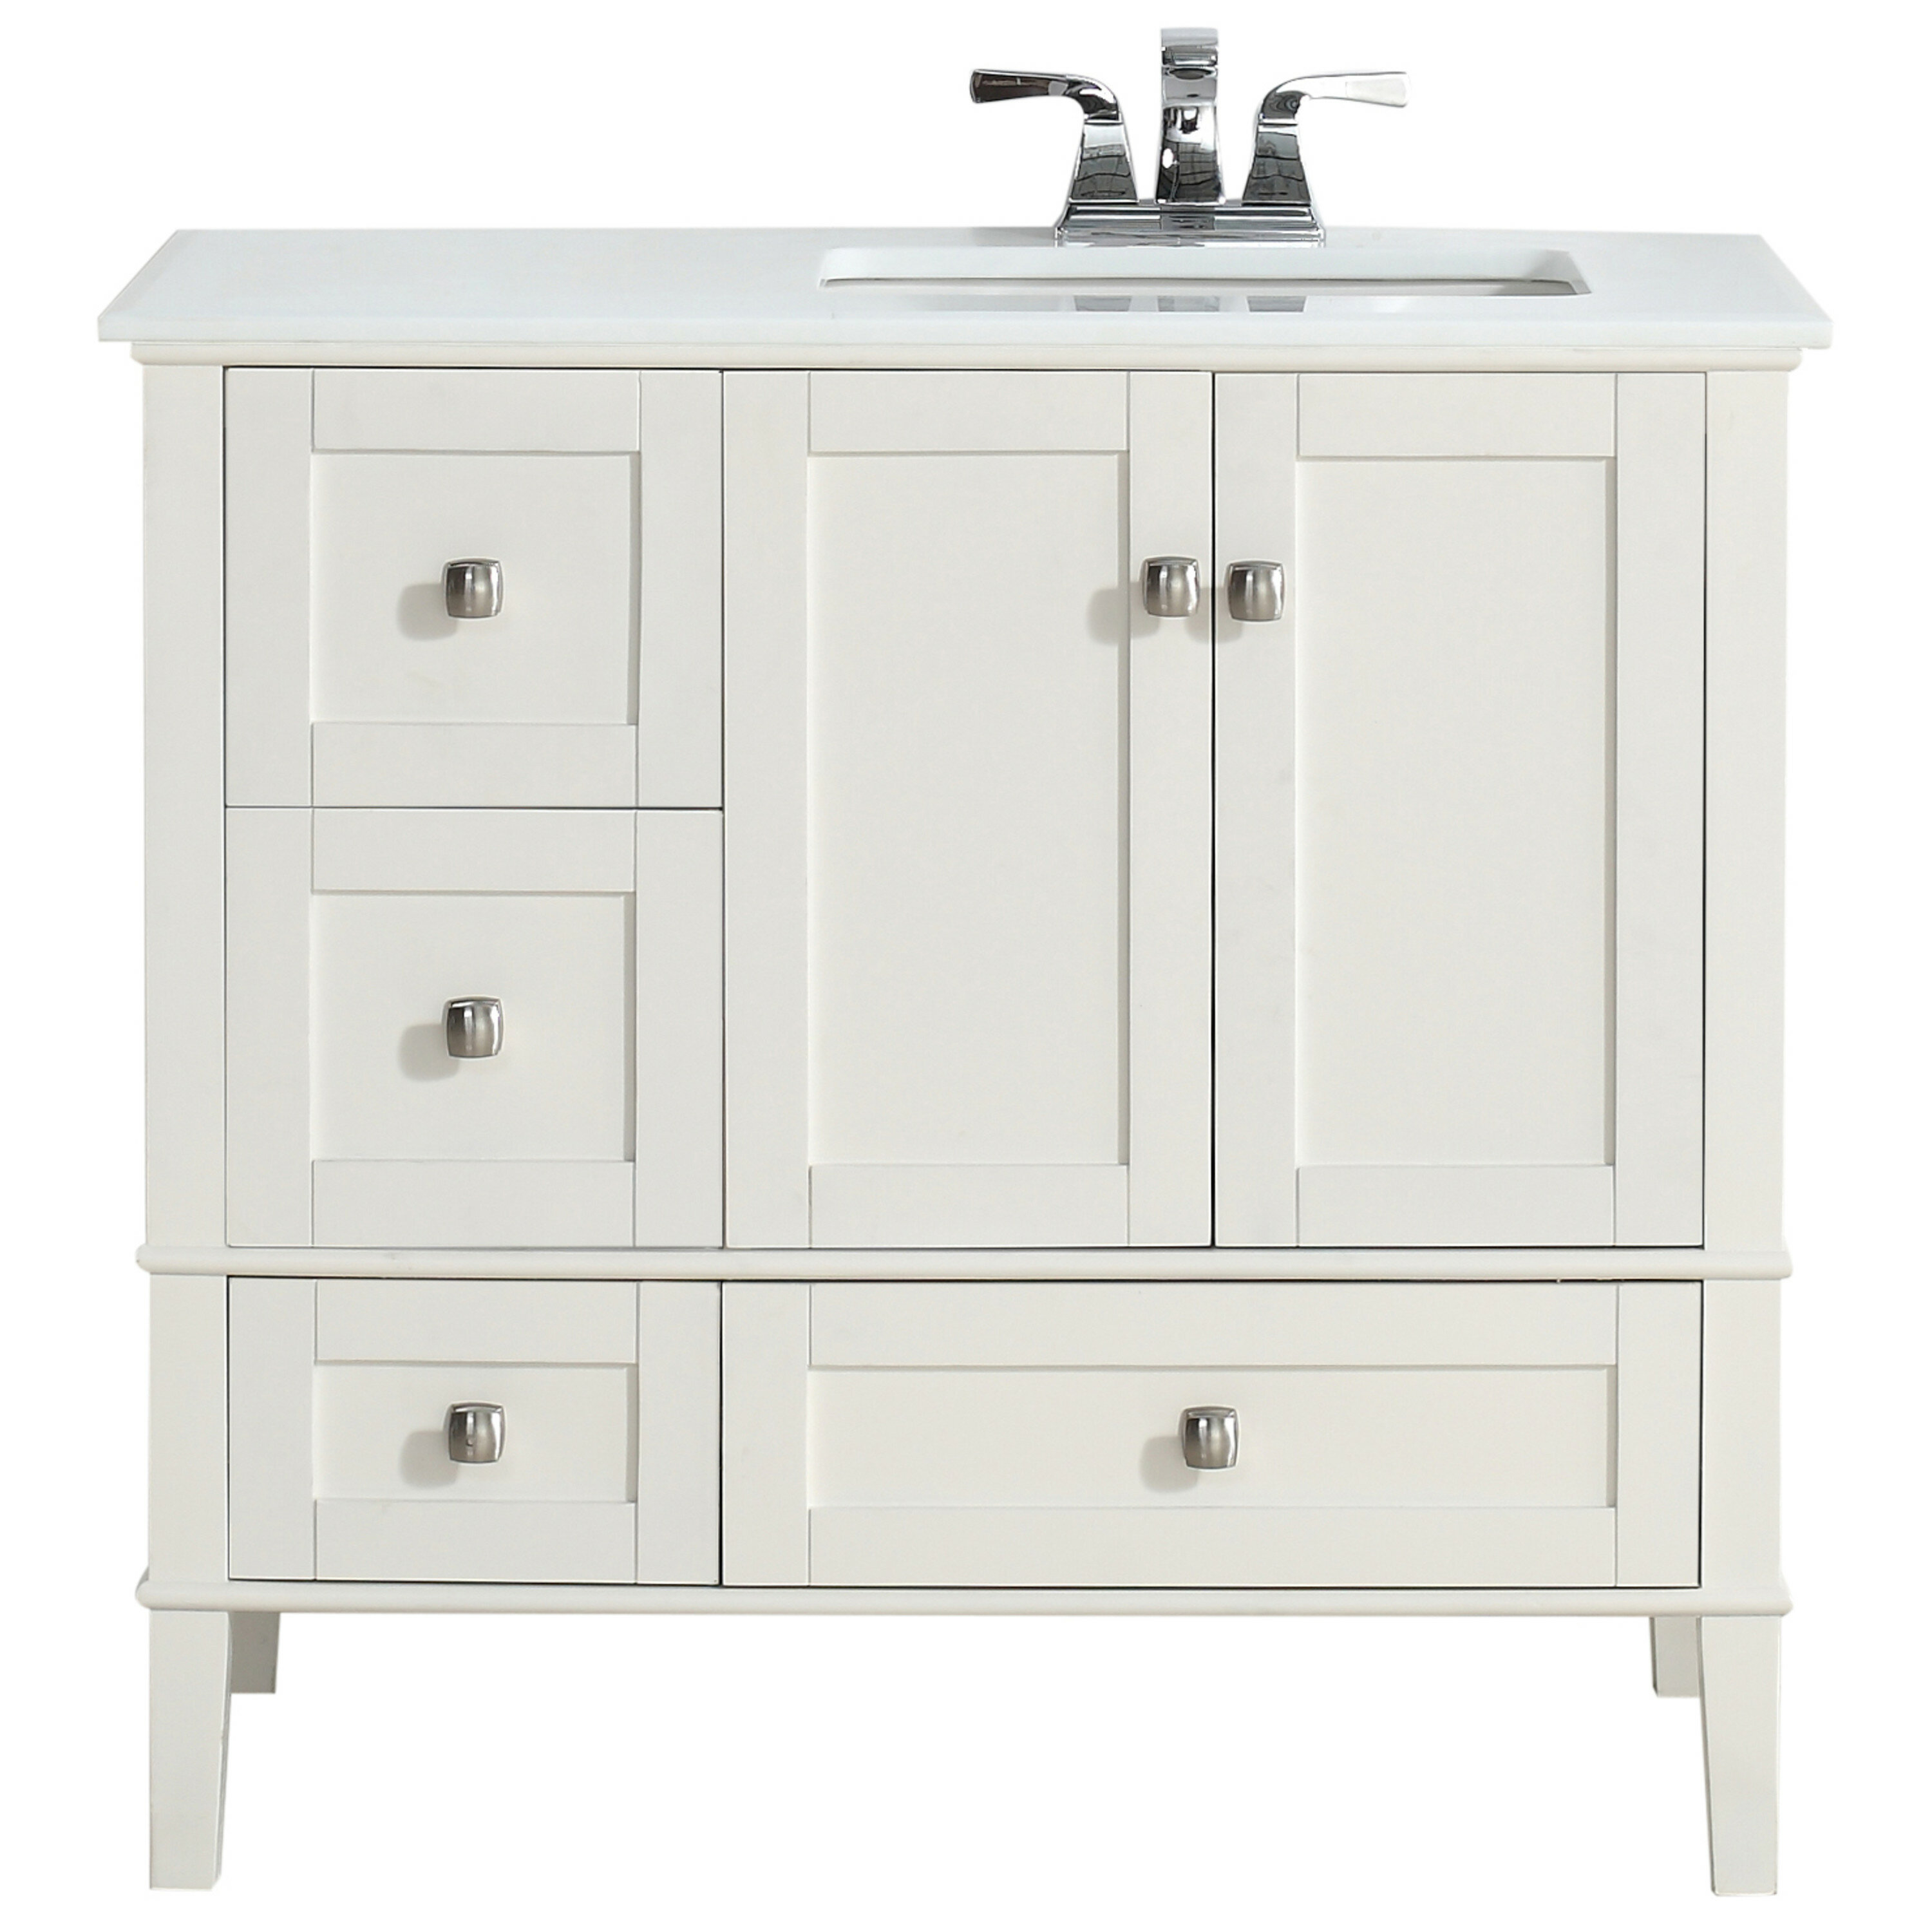 chelsea inch quartz guaranteed bath single quick home adxcomputer white top offset with simpli sink ideas to vanity bathroom the right